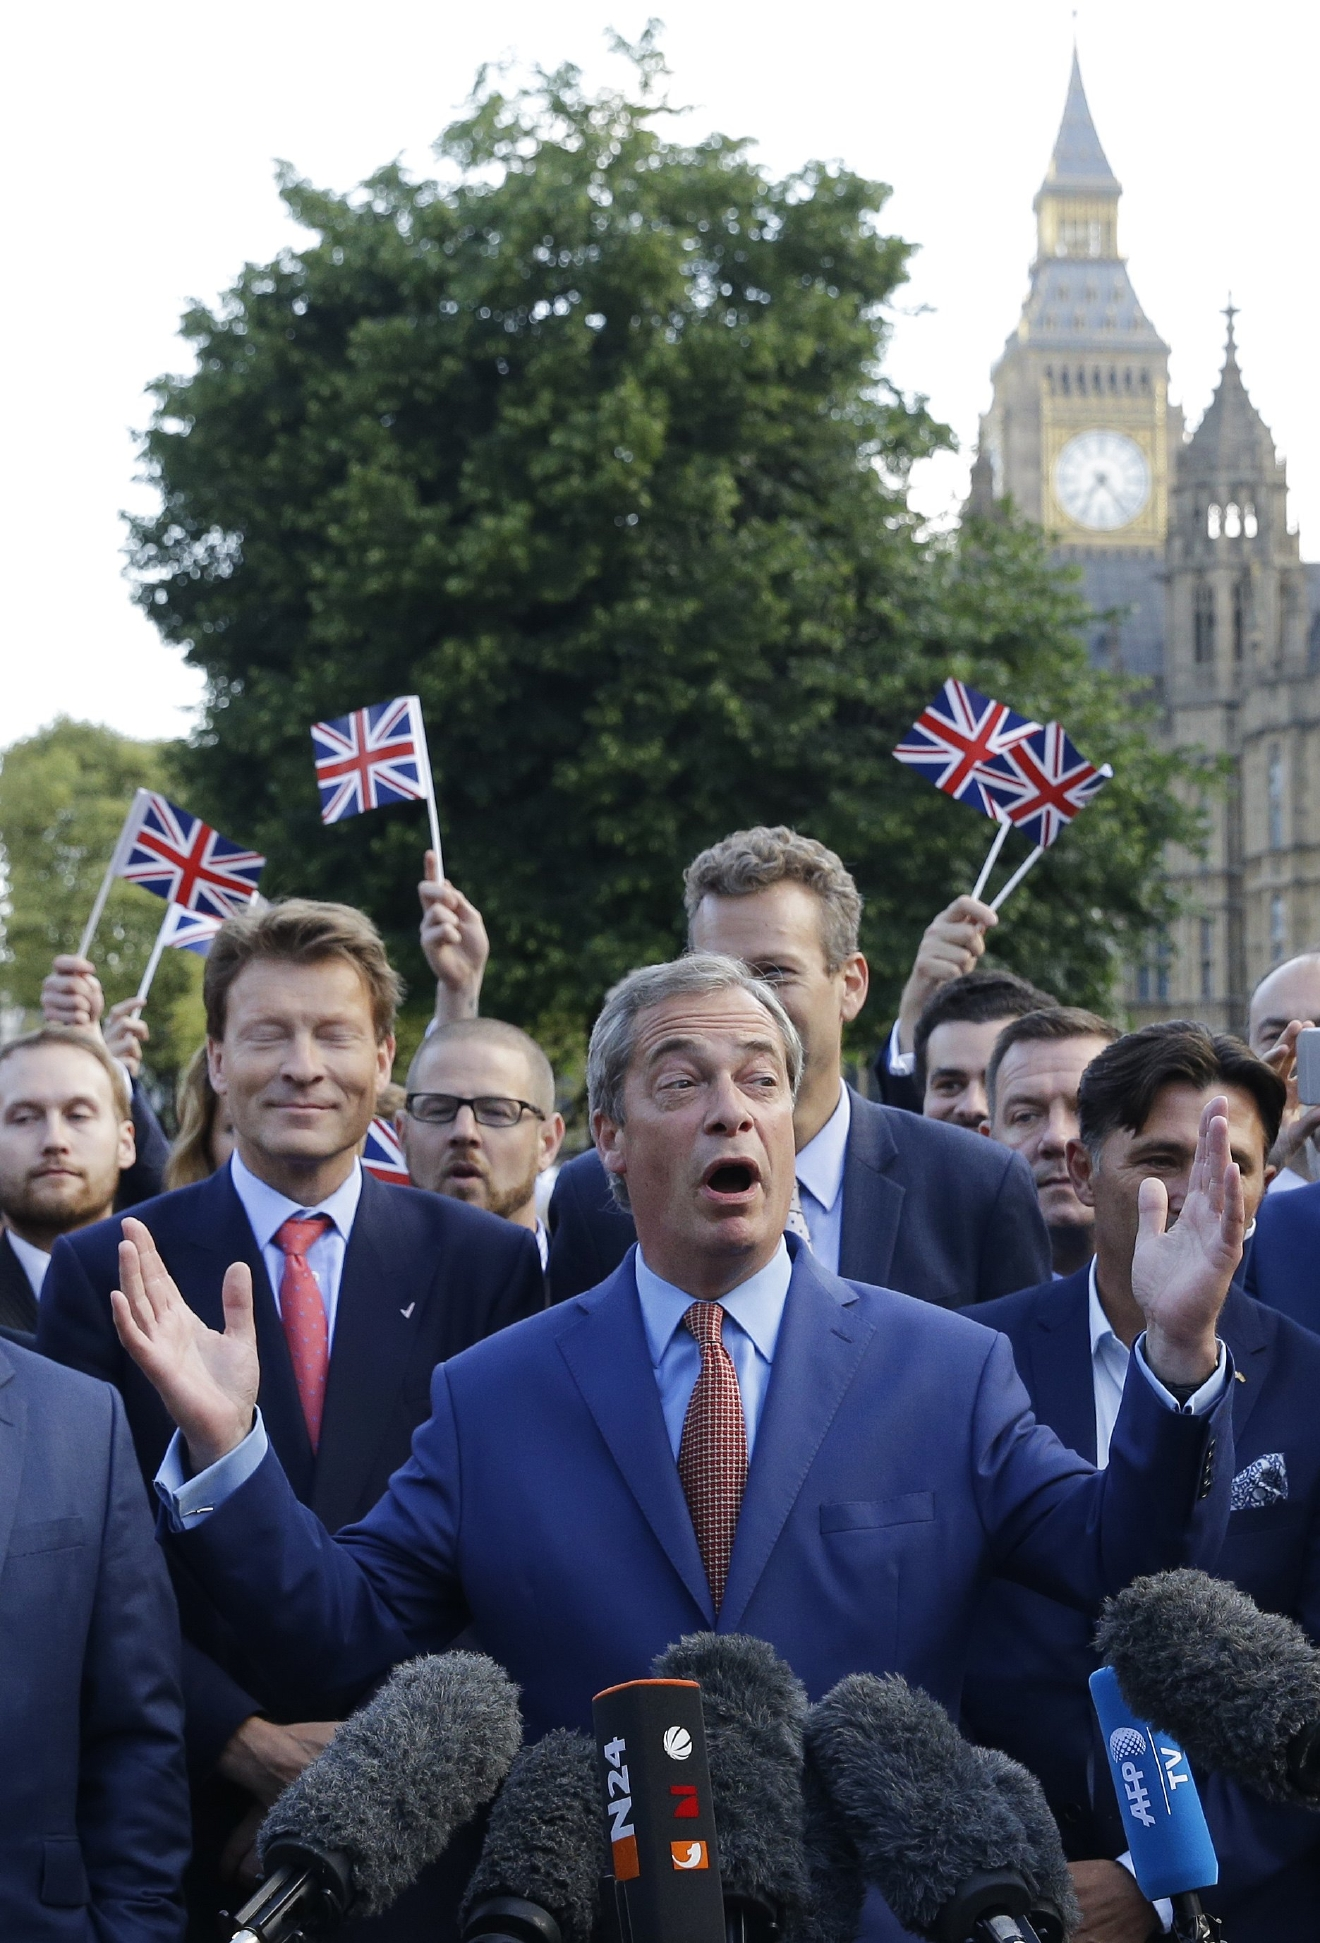 Nigel Farage, the leader of the UK Independence Party speaks to the media on College Green in London, Friday, June 24, 2016. Britain voted to leave the European Union after a bitterly divisive referendum campaign, according to tallies of official results Friday. (AP Photo/Matt Dunham)